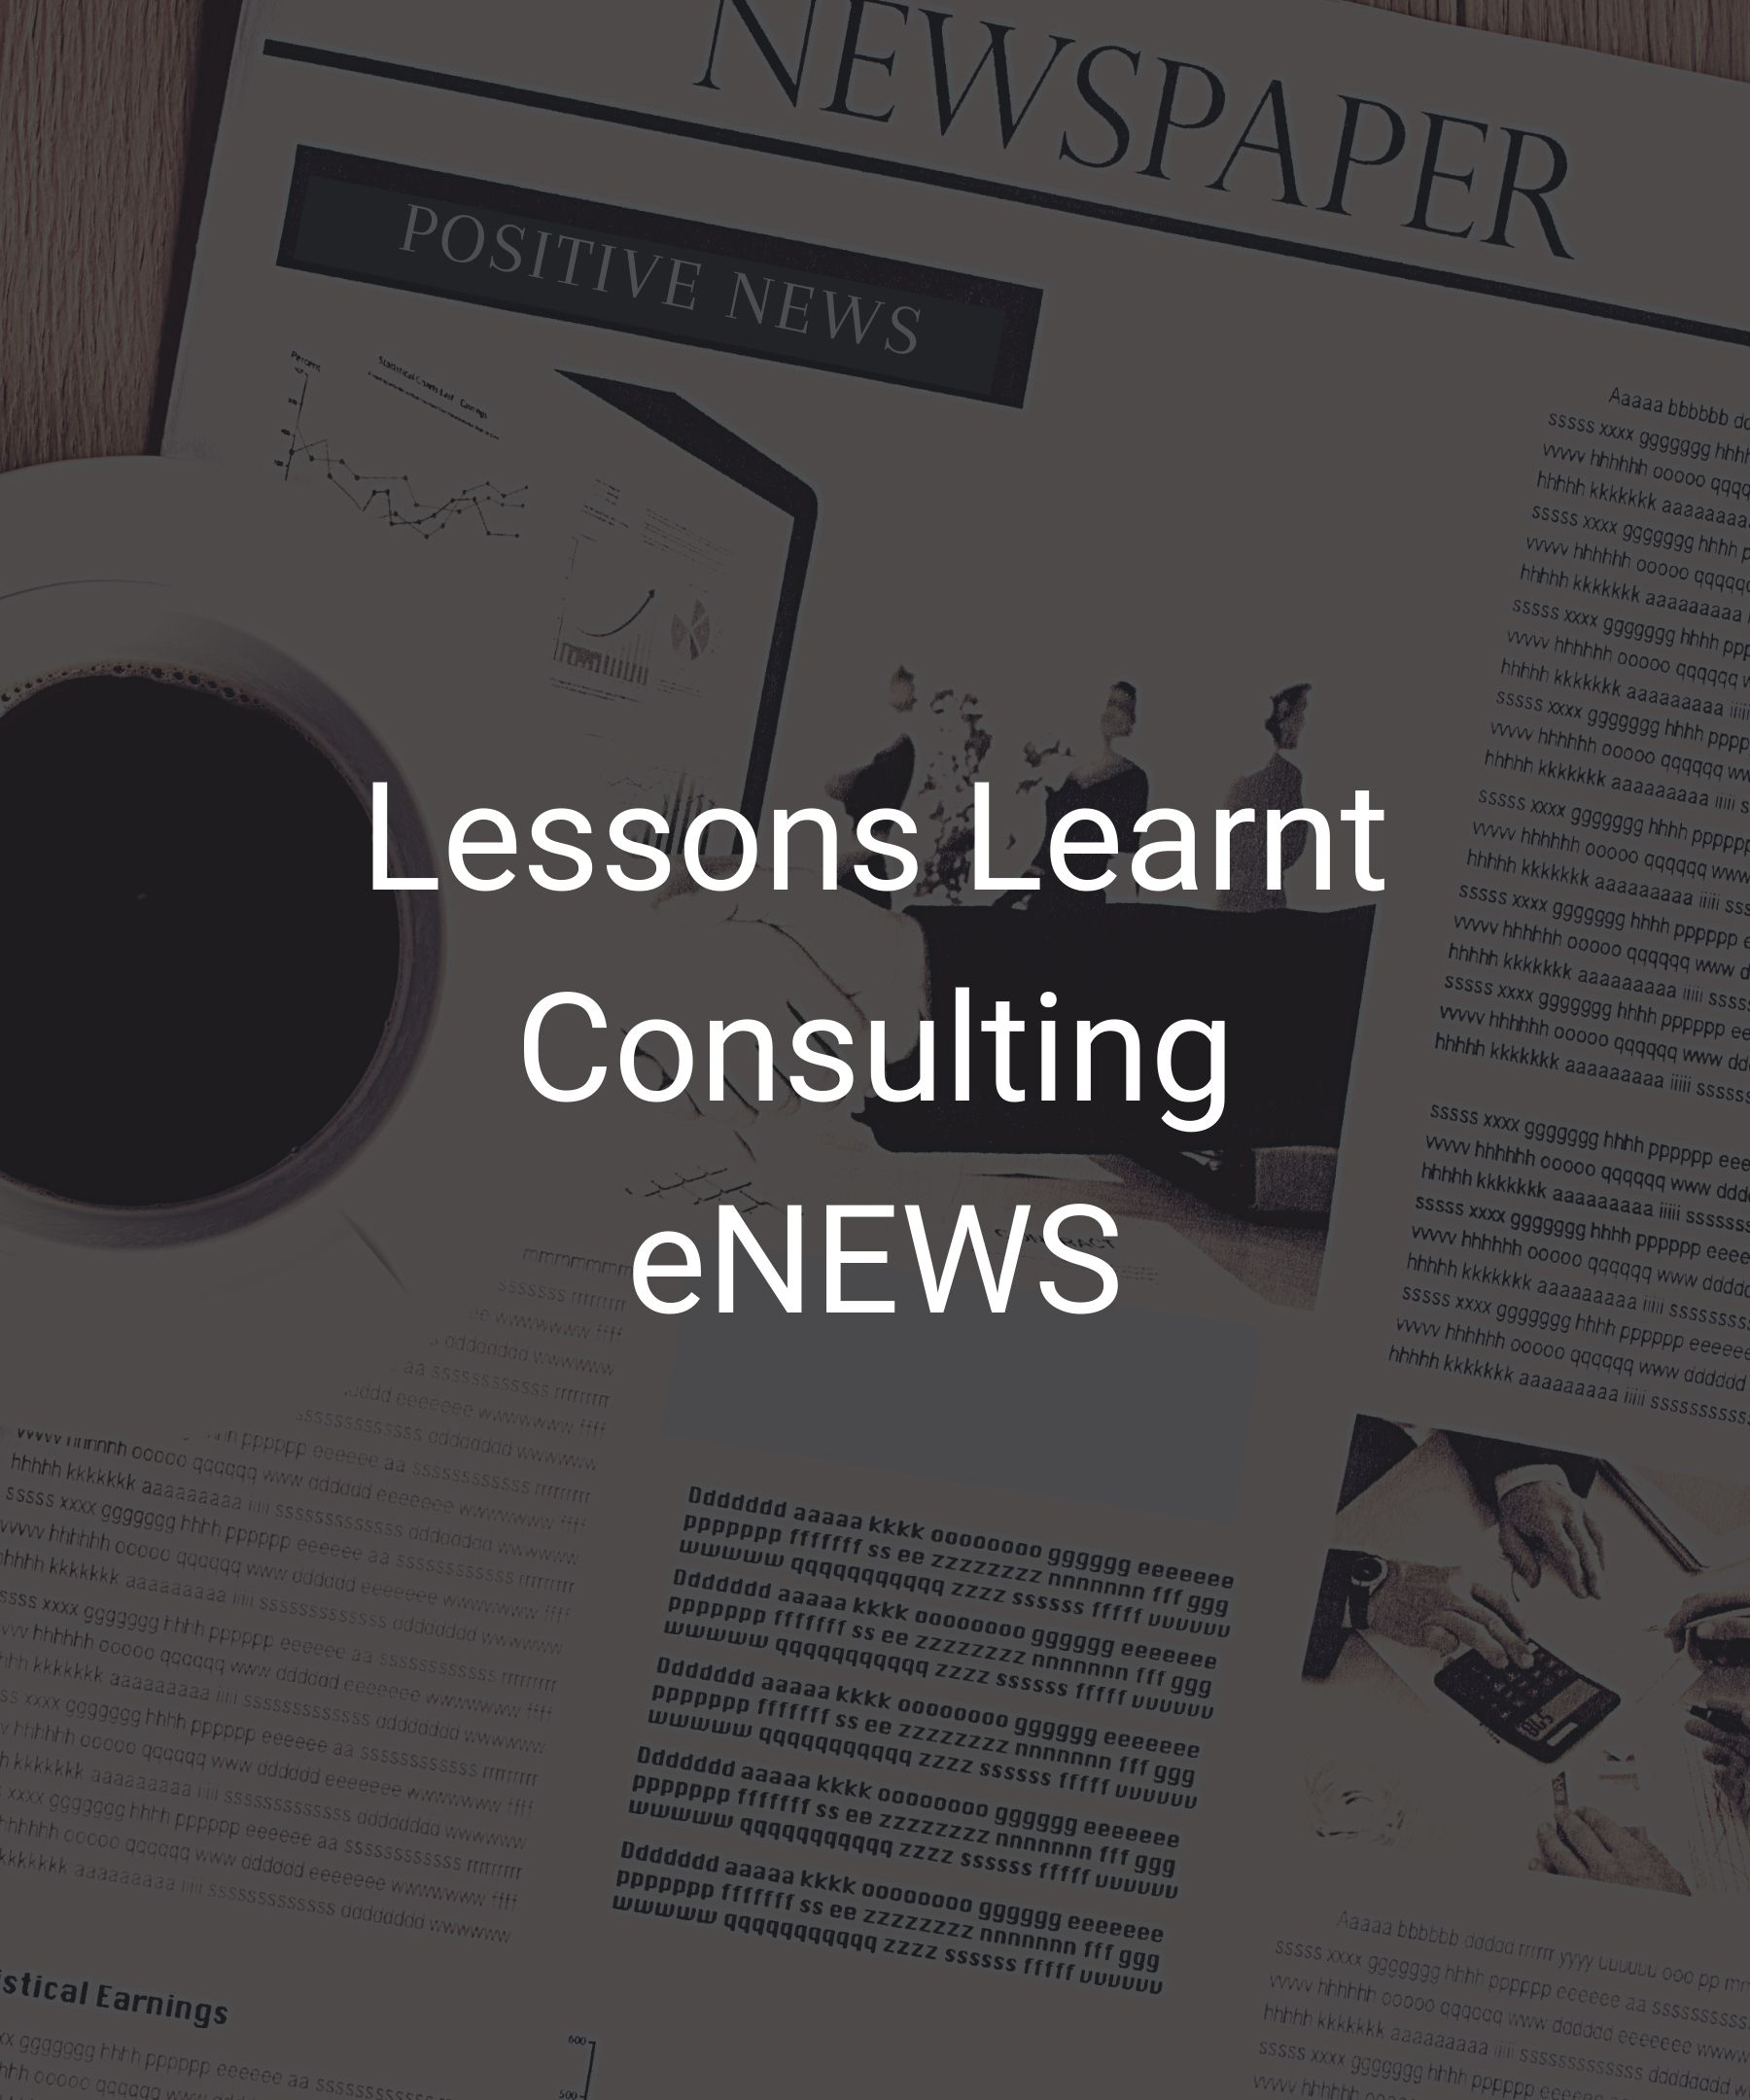 Lessons Learnt Consulting eNEWS